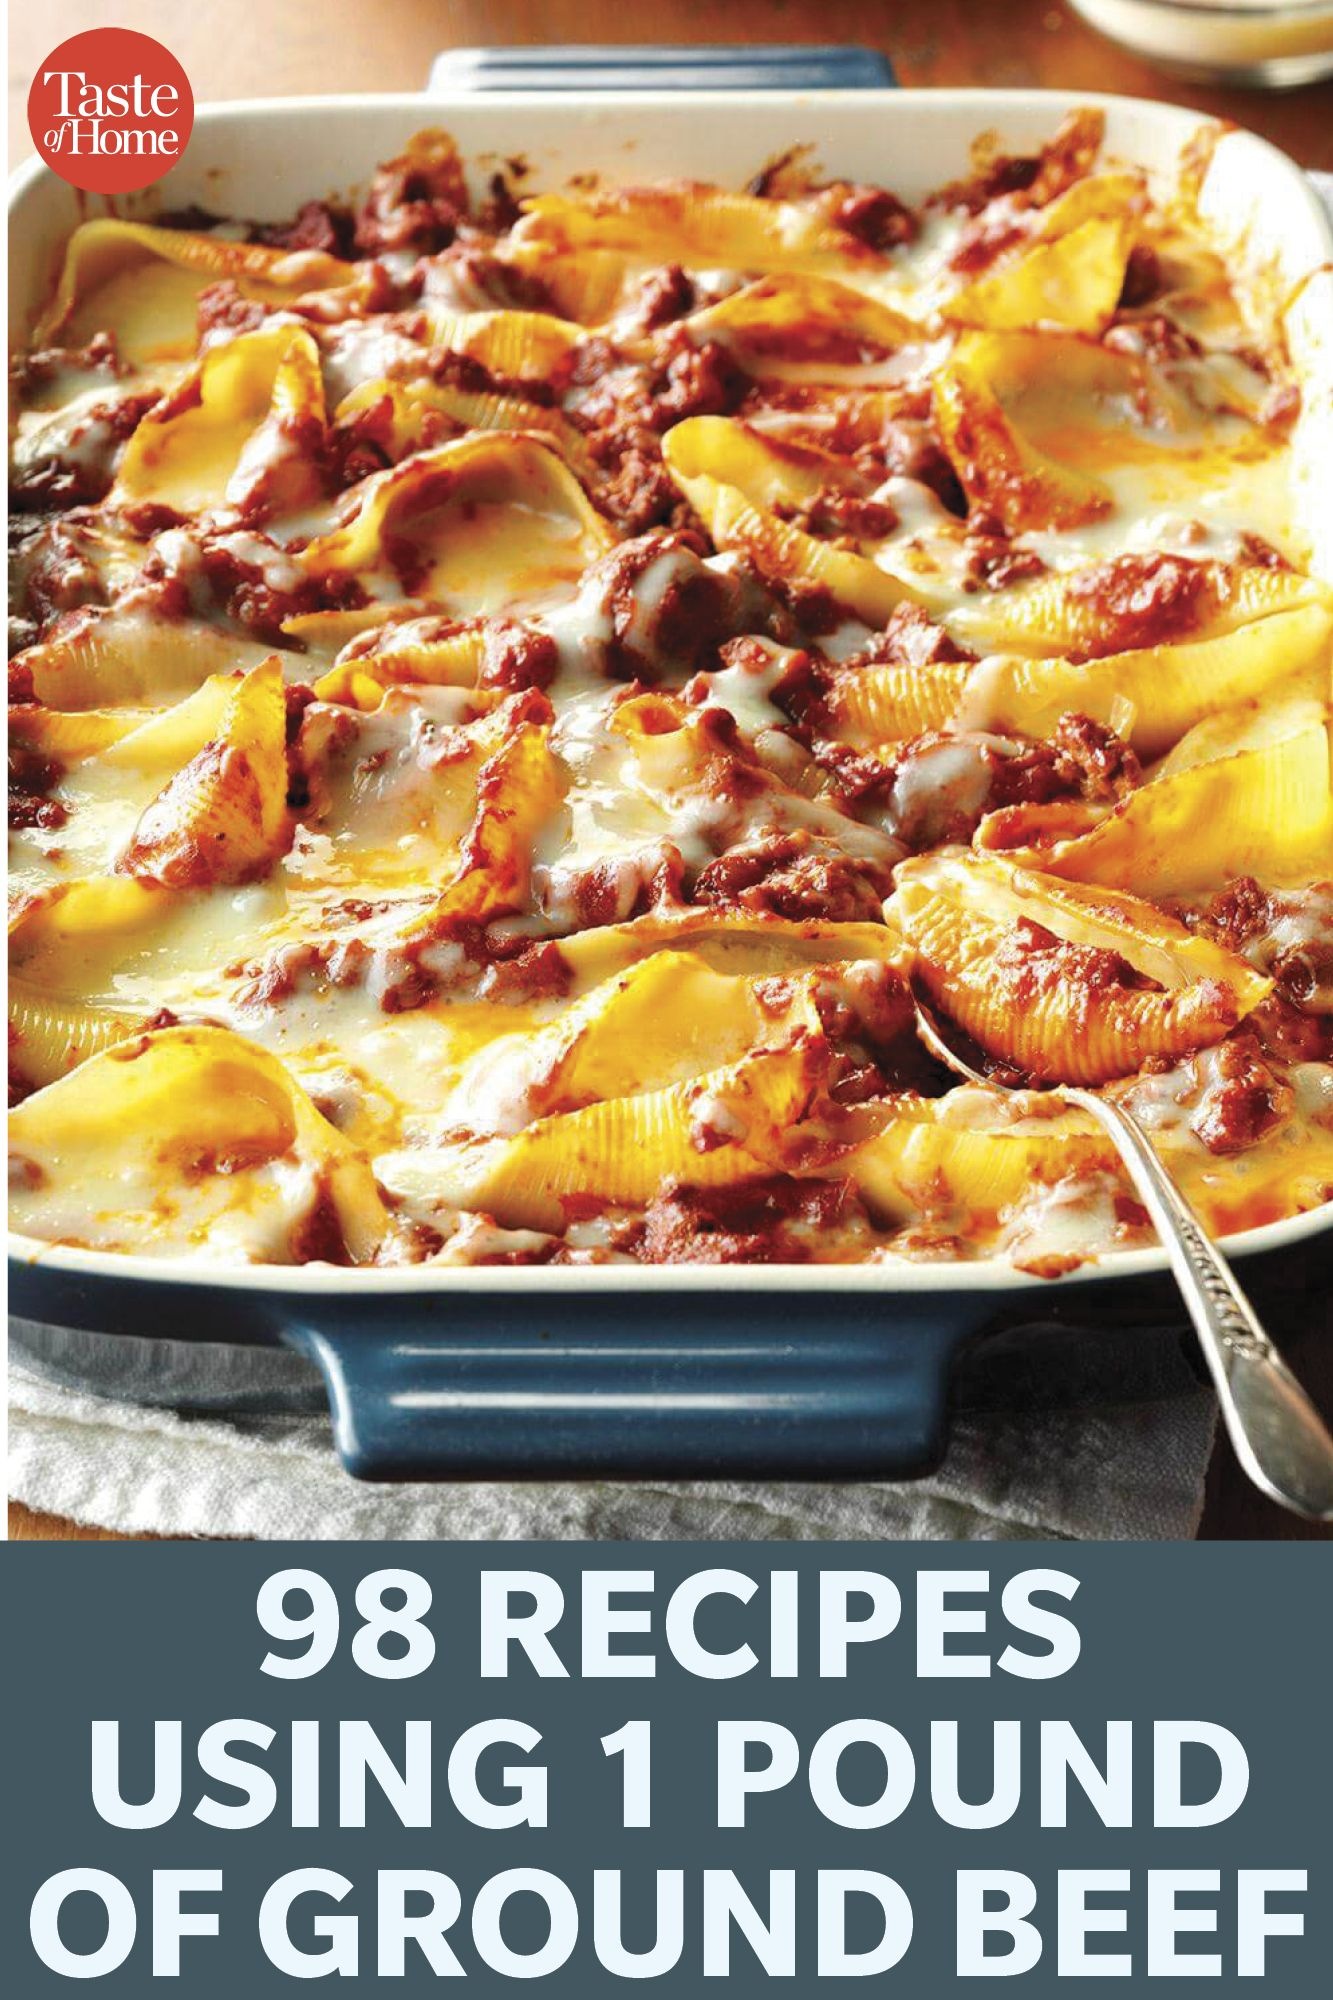 98 Recipes Using 1 Pound Of Ground Beef In 2020 Ground Beef Recipes Ground Meat Recipes Beef Recipes